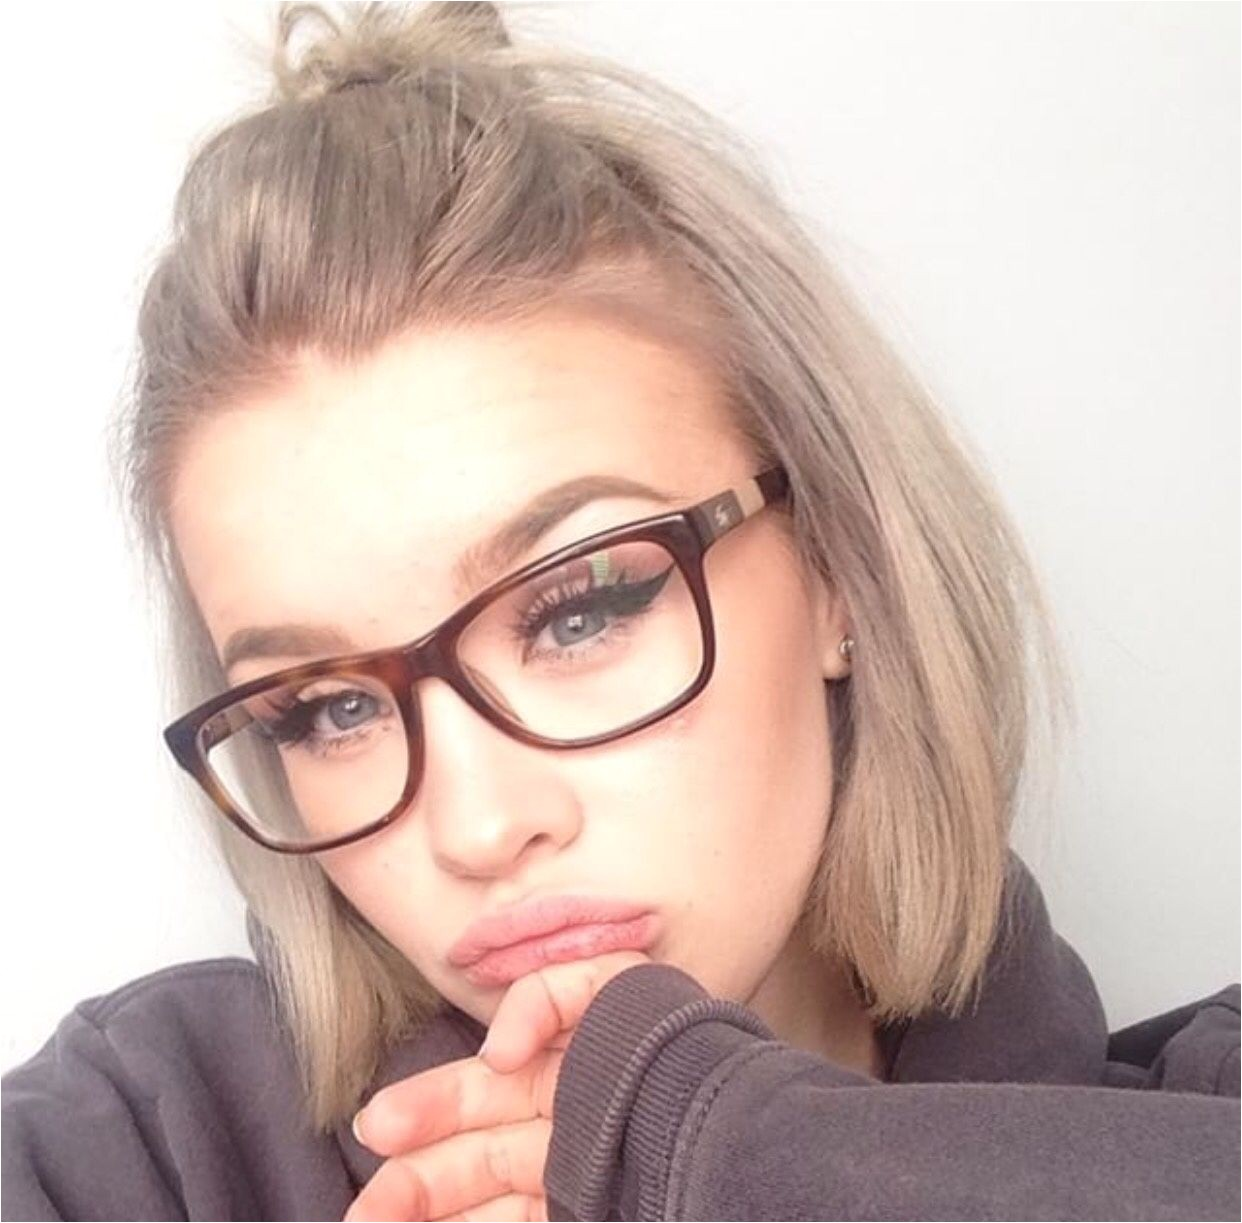 Hairstyles for Girls with Glasses Lovely Pin by Lily Kalpaktsoglou Glasses Pinterest Hairstyles for